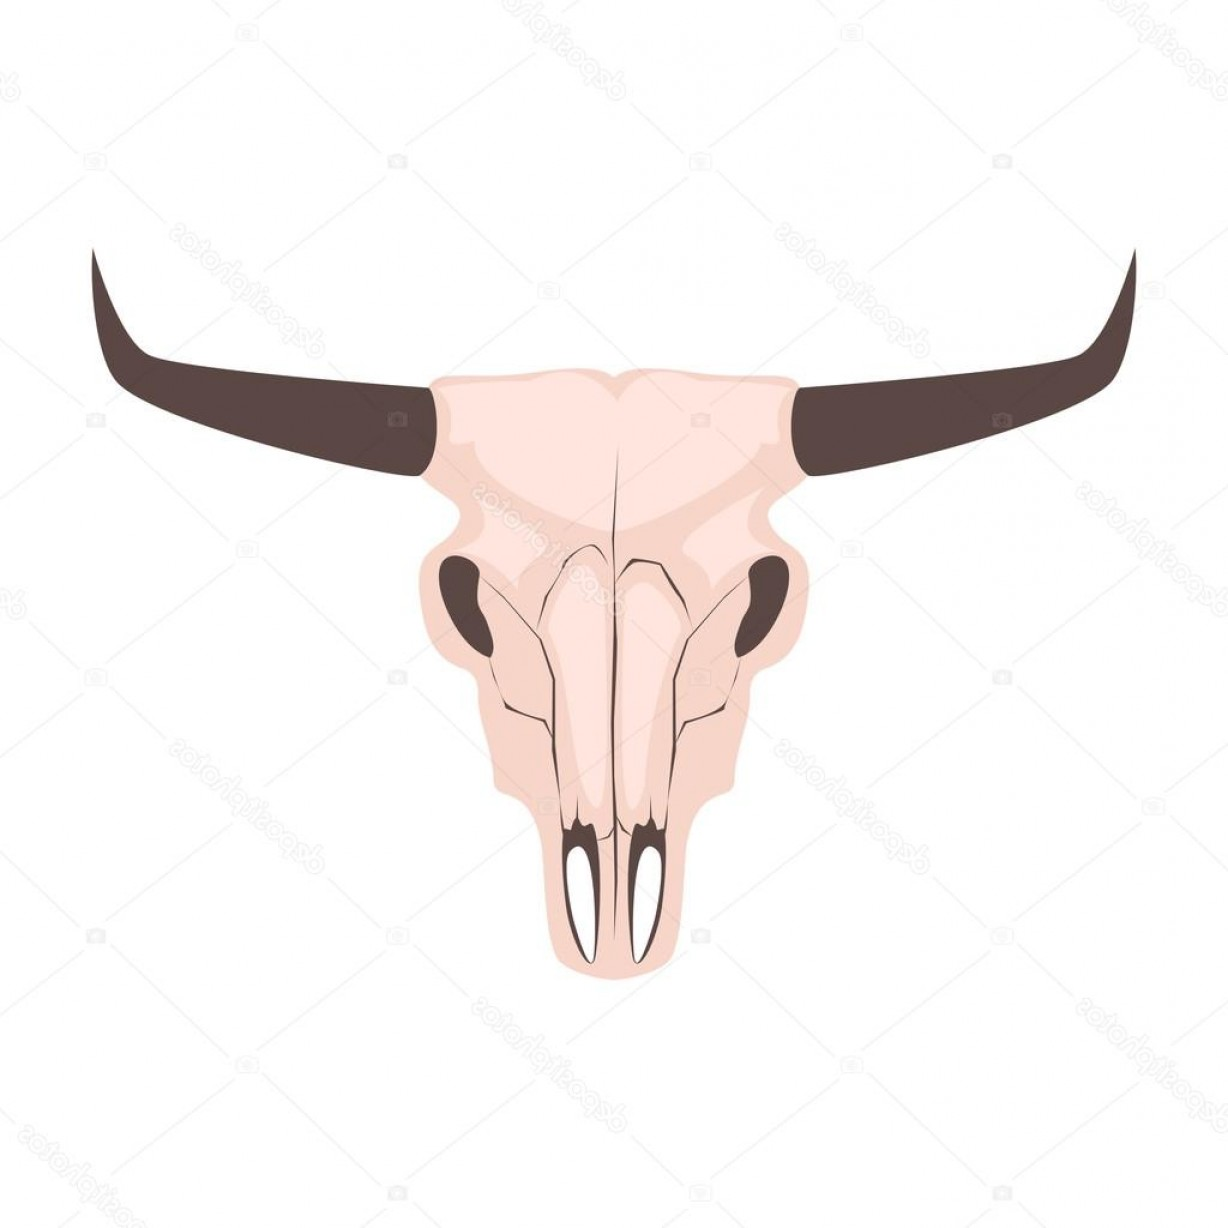 Longhorn Skull Vector: Stock Illustration Longhorn Cow Skull Head Vector